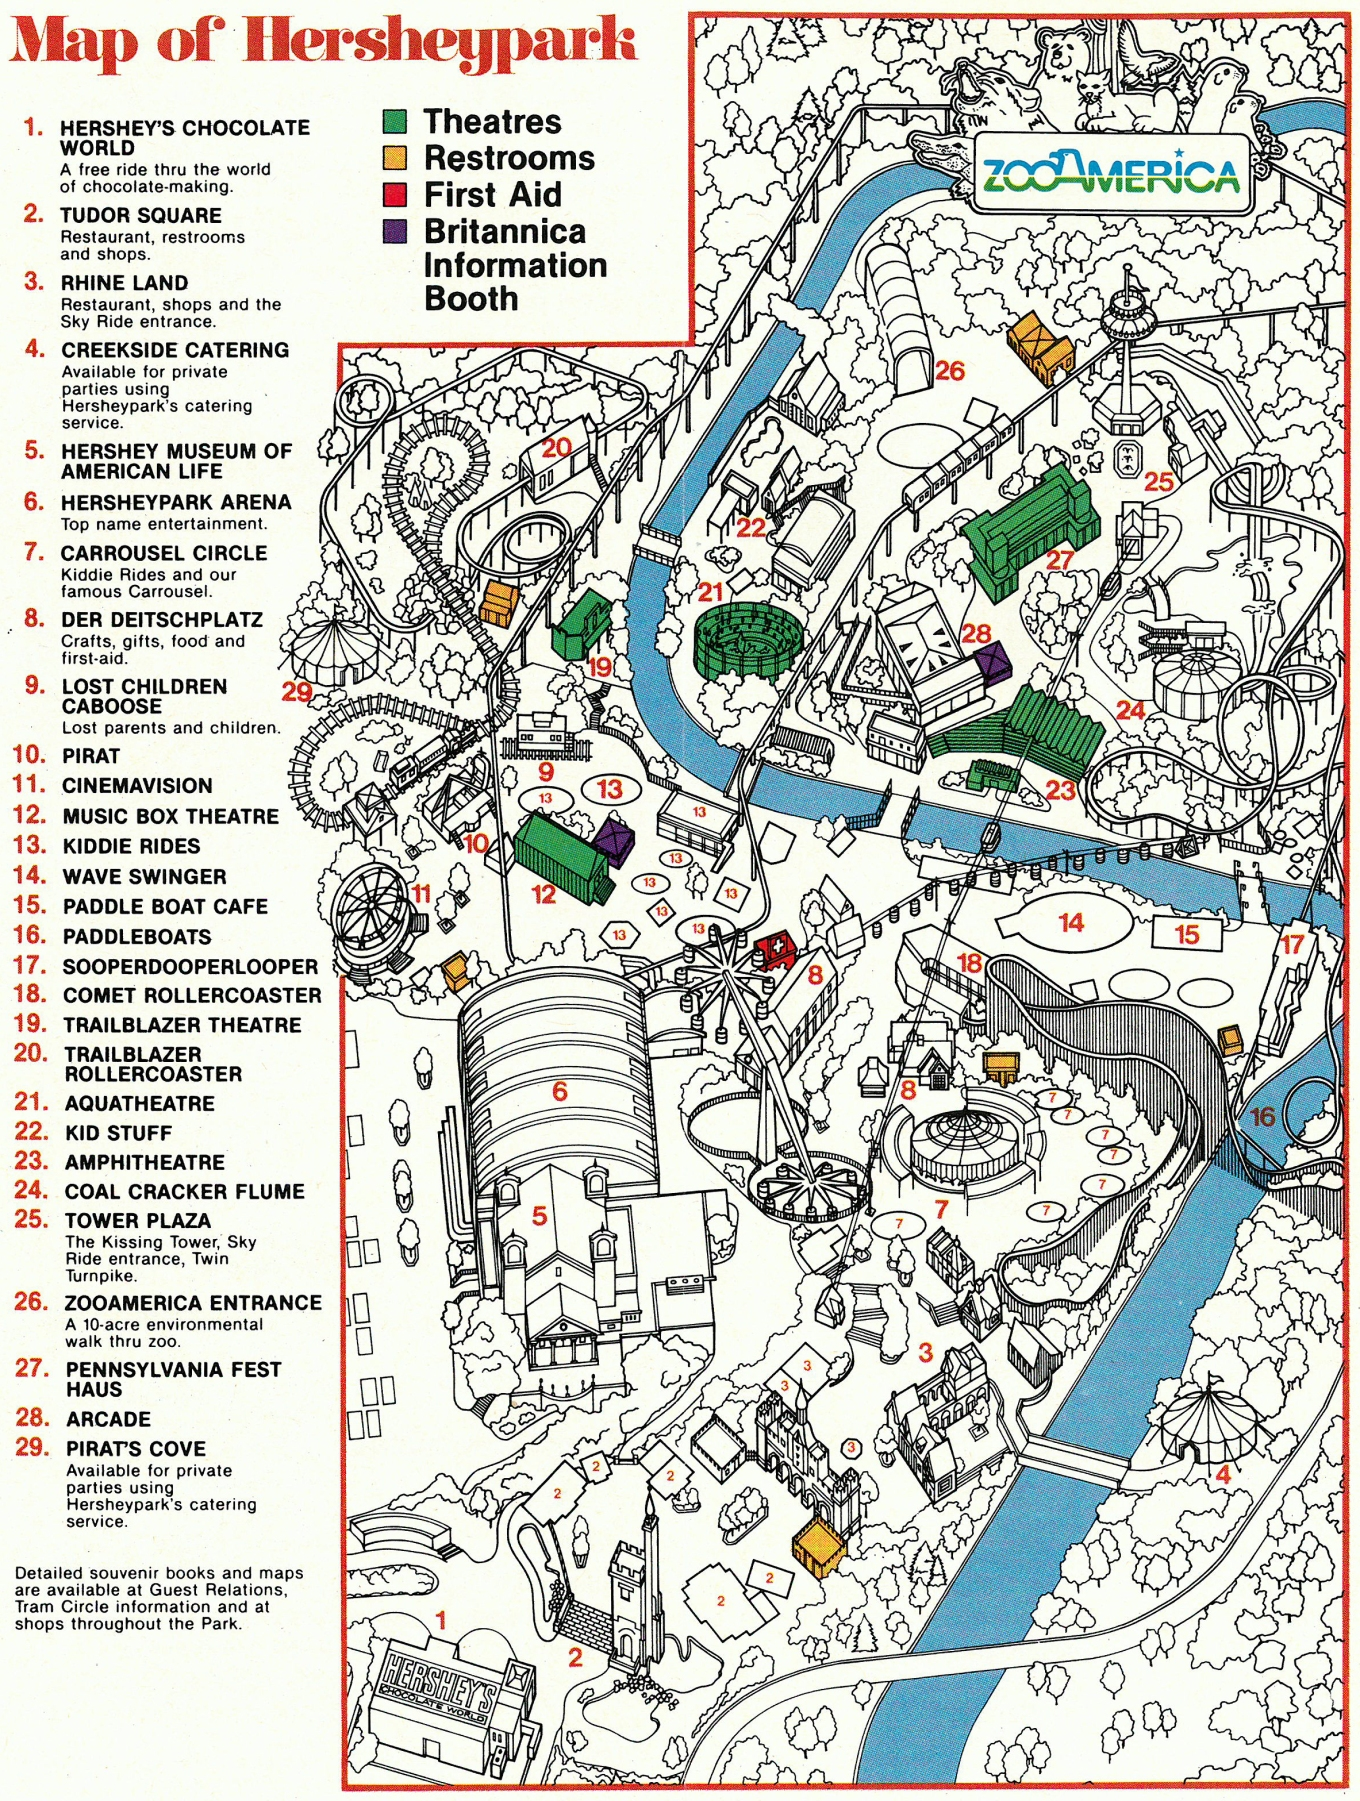 1983 Hersheypark map